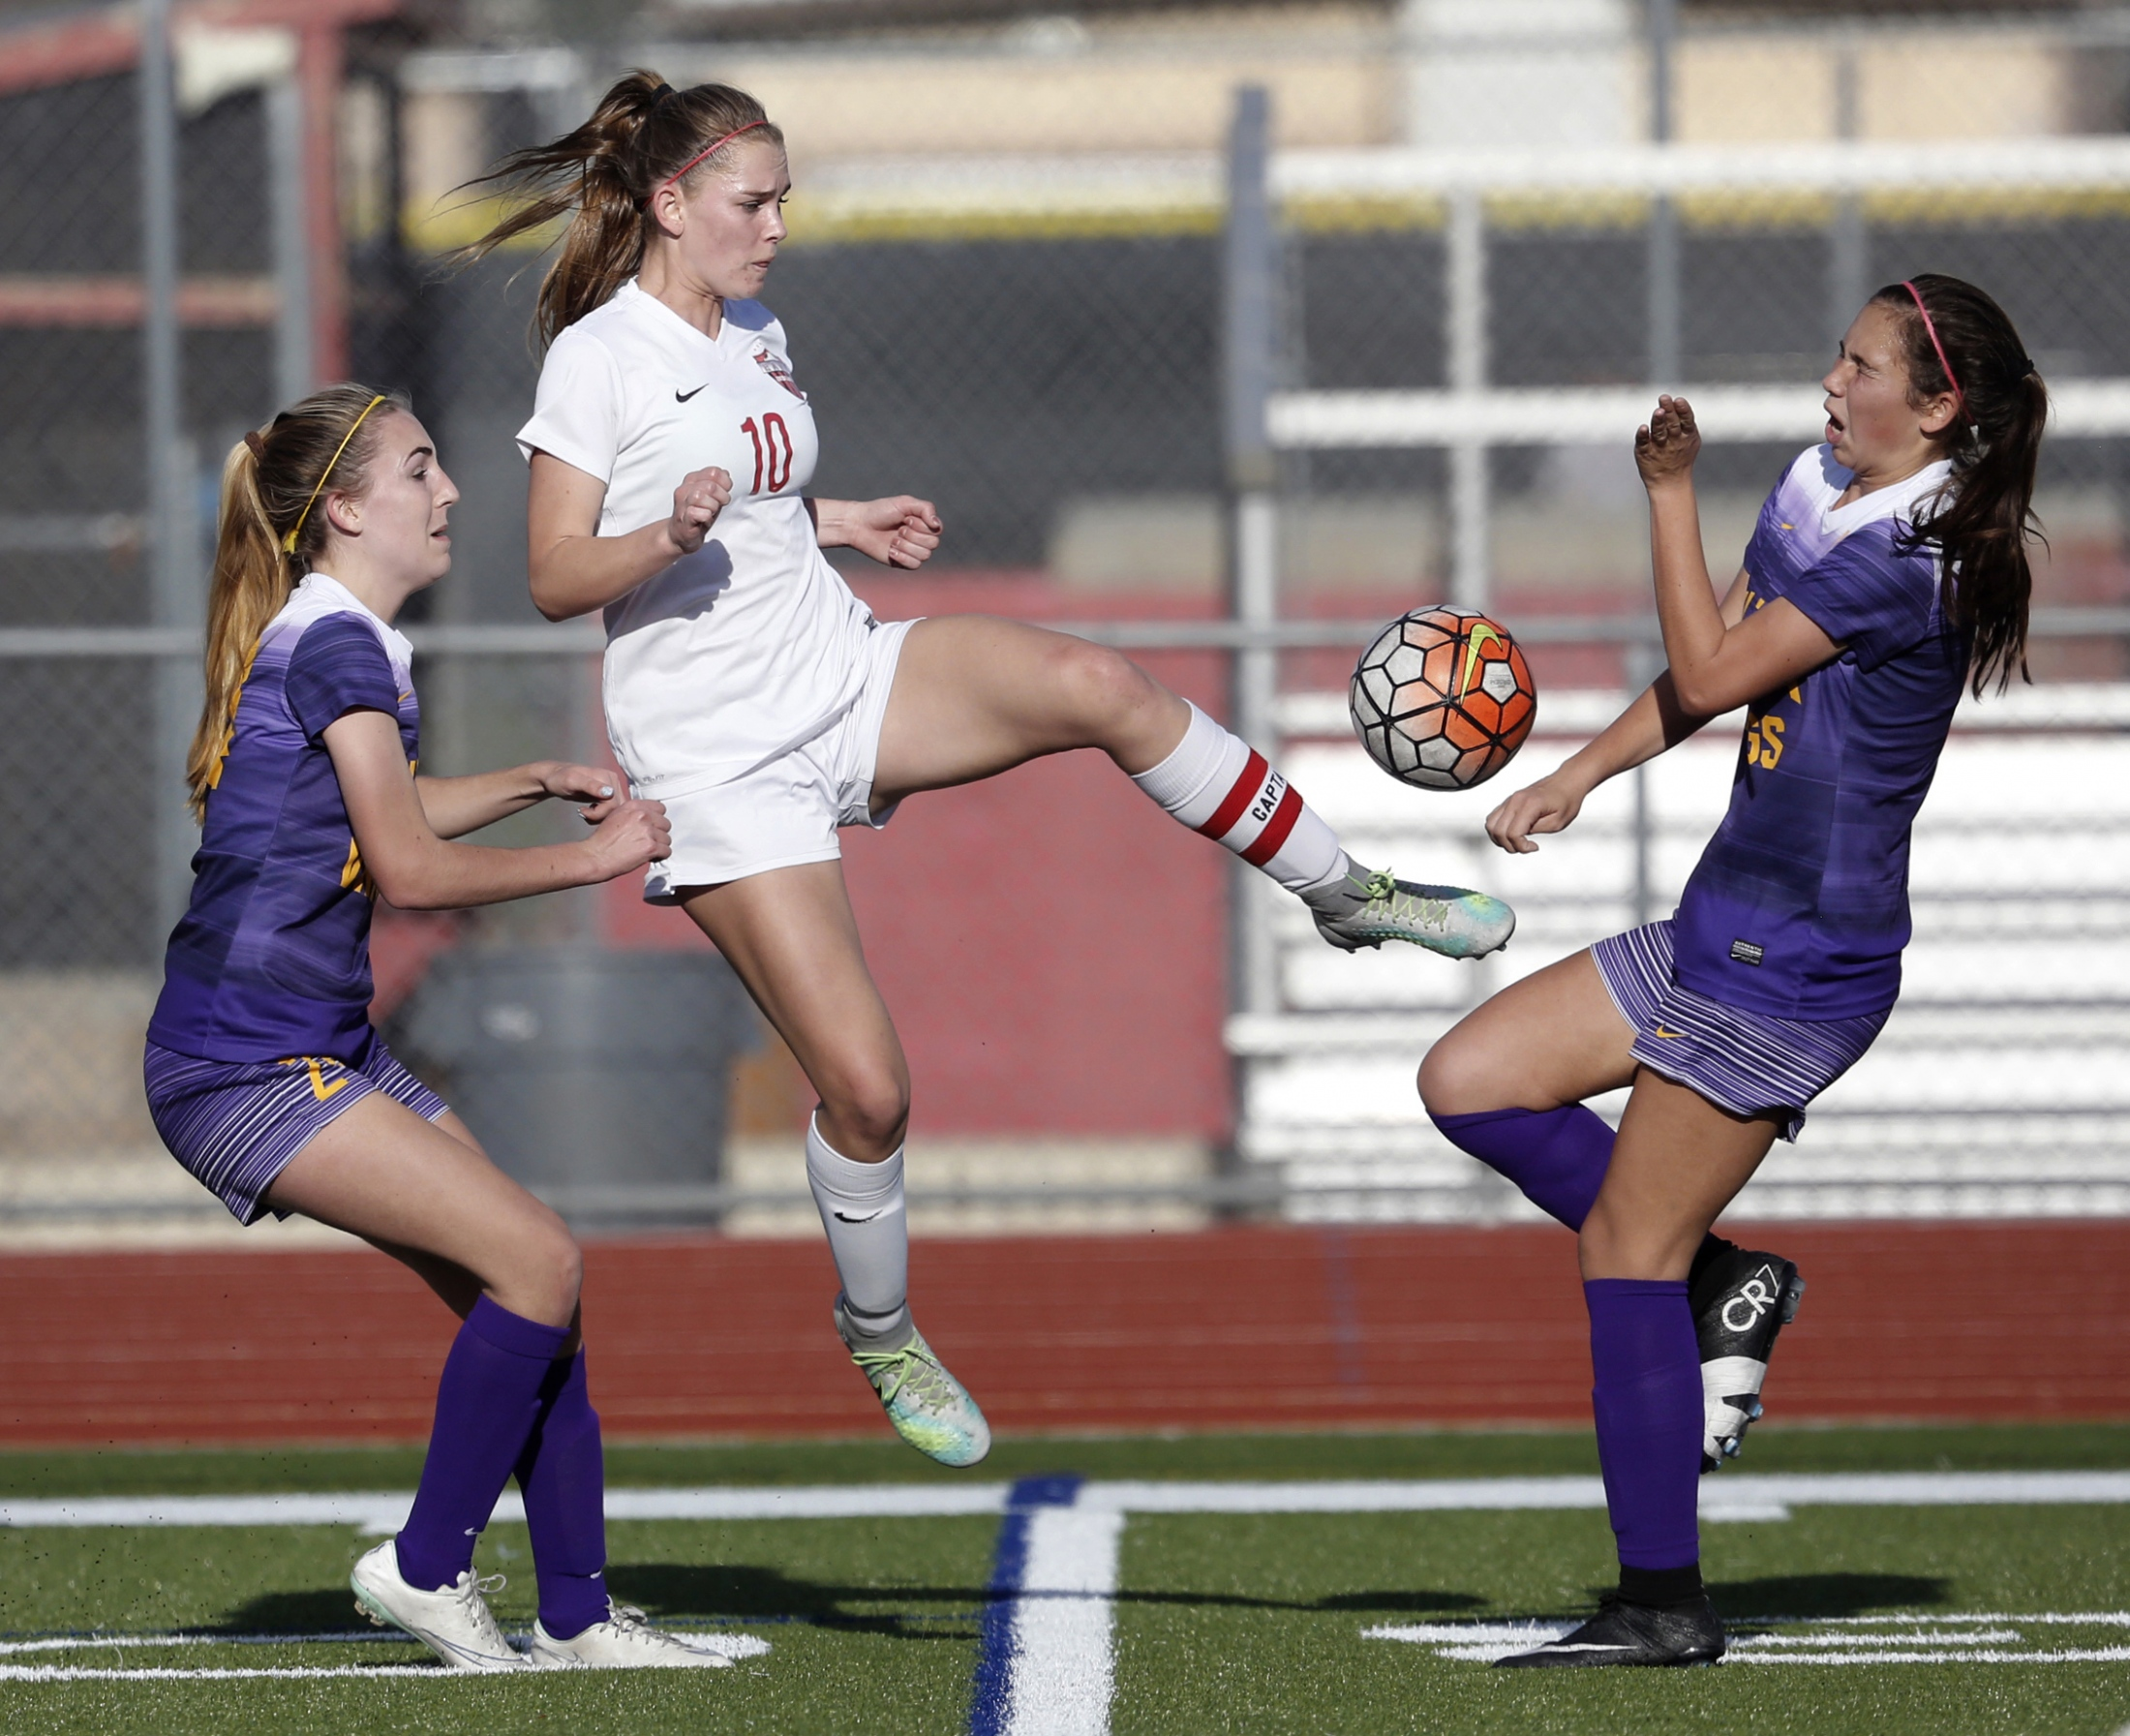 Hart's Taylor Scott (10) jumps to kick the ball away from Valencia's Kimberly Anderson (24), left, as Valencia's Kiana Kukaua (5) tries to avoid the ball during a soccer game at Hart on Thursday, Feb. 9, 2017. Katharine Lotze/Signal